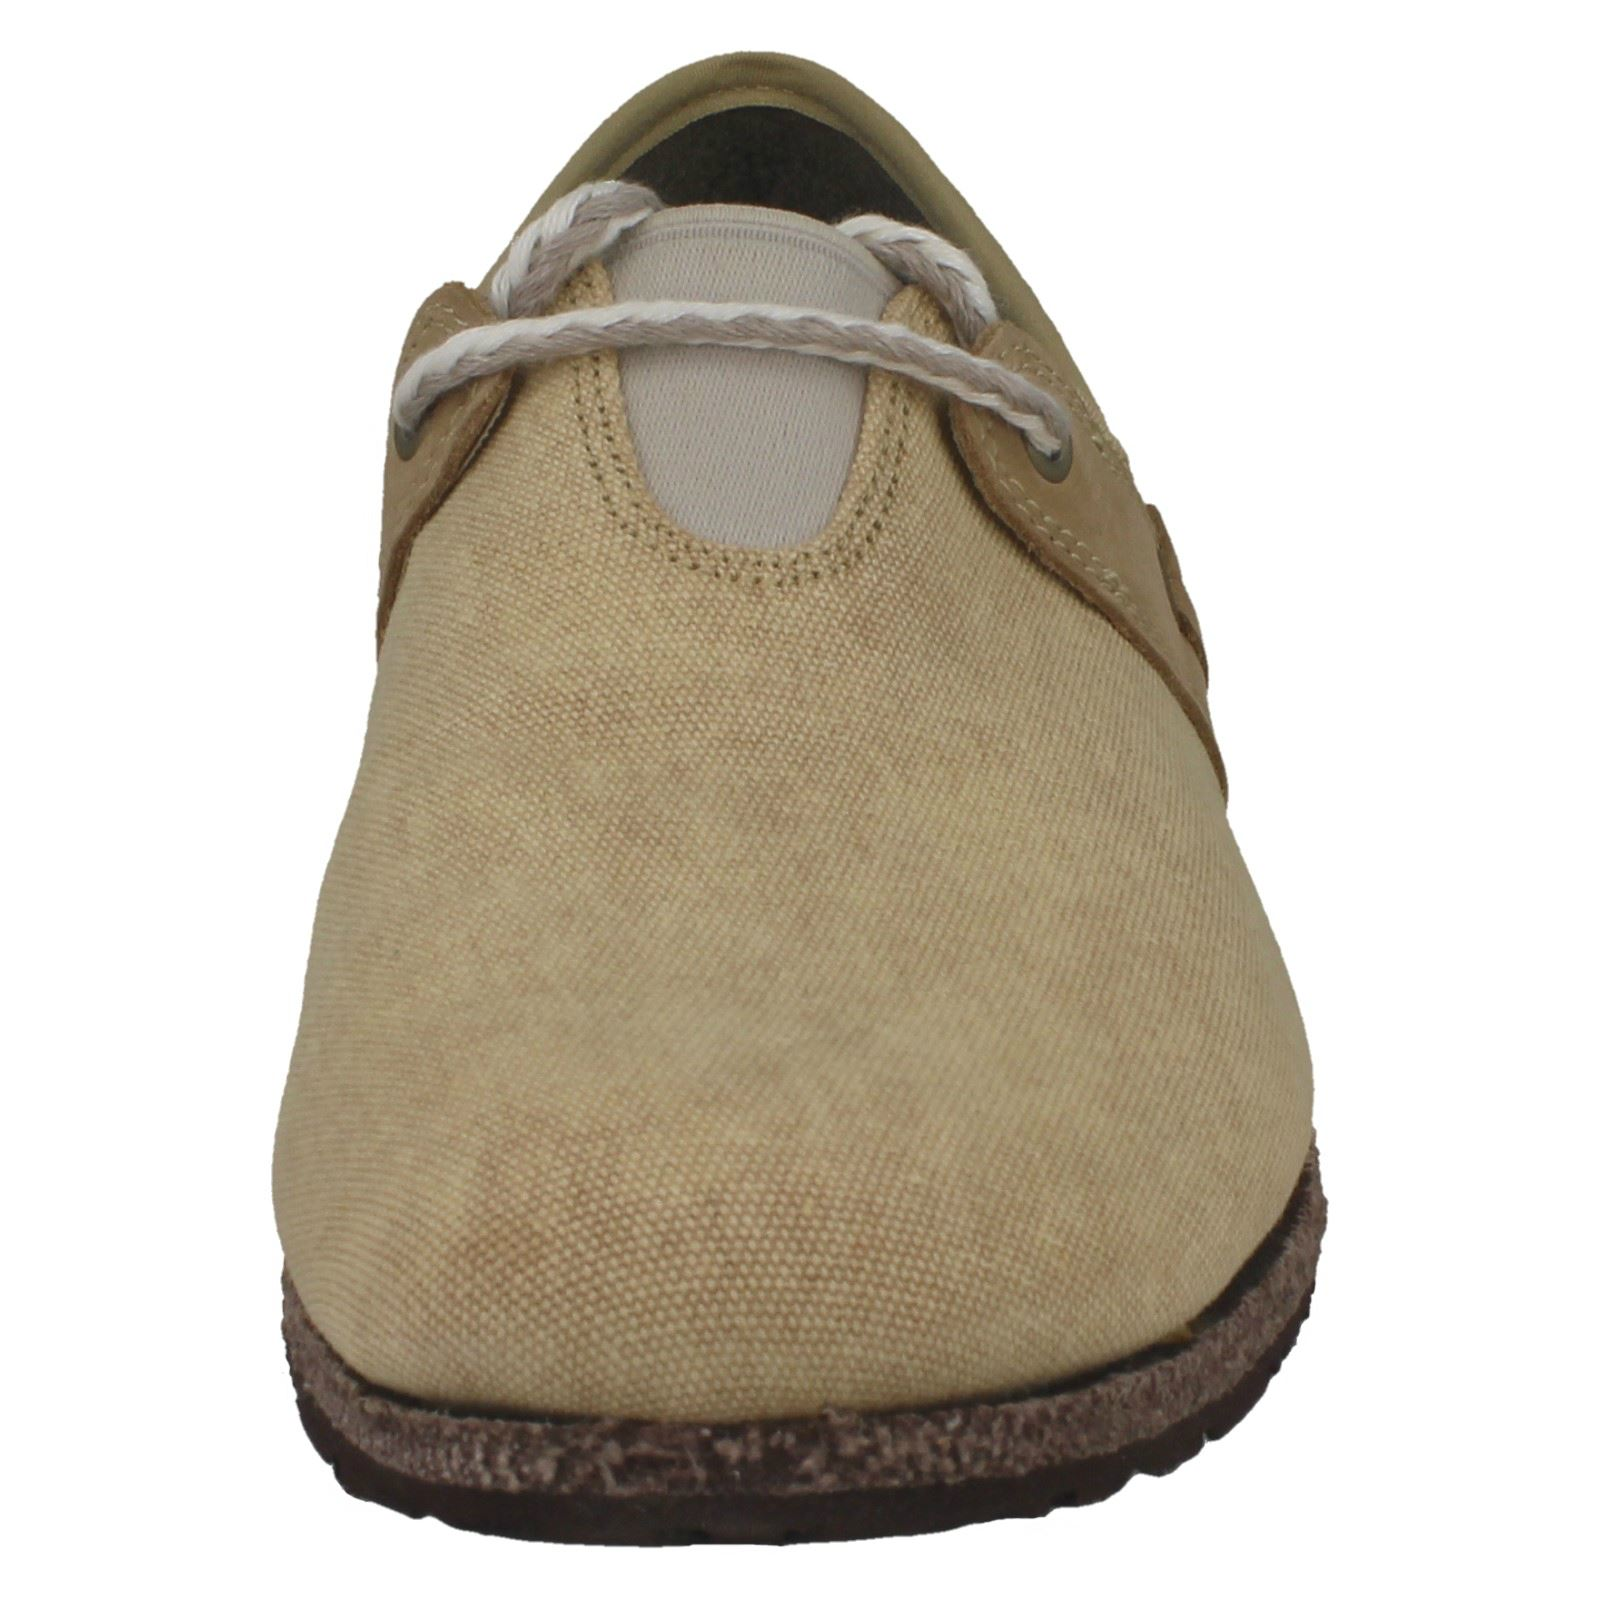 Ladies-Merrell-Casual-Flat-Shoes-039-Artemisia-039 thumbnail 7